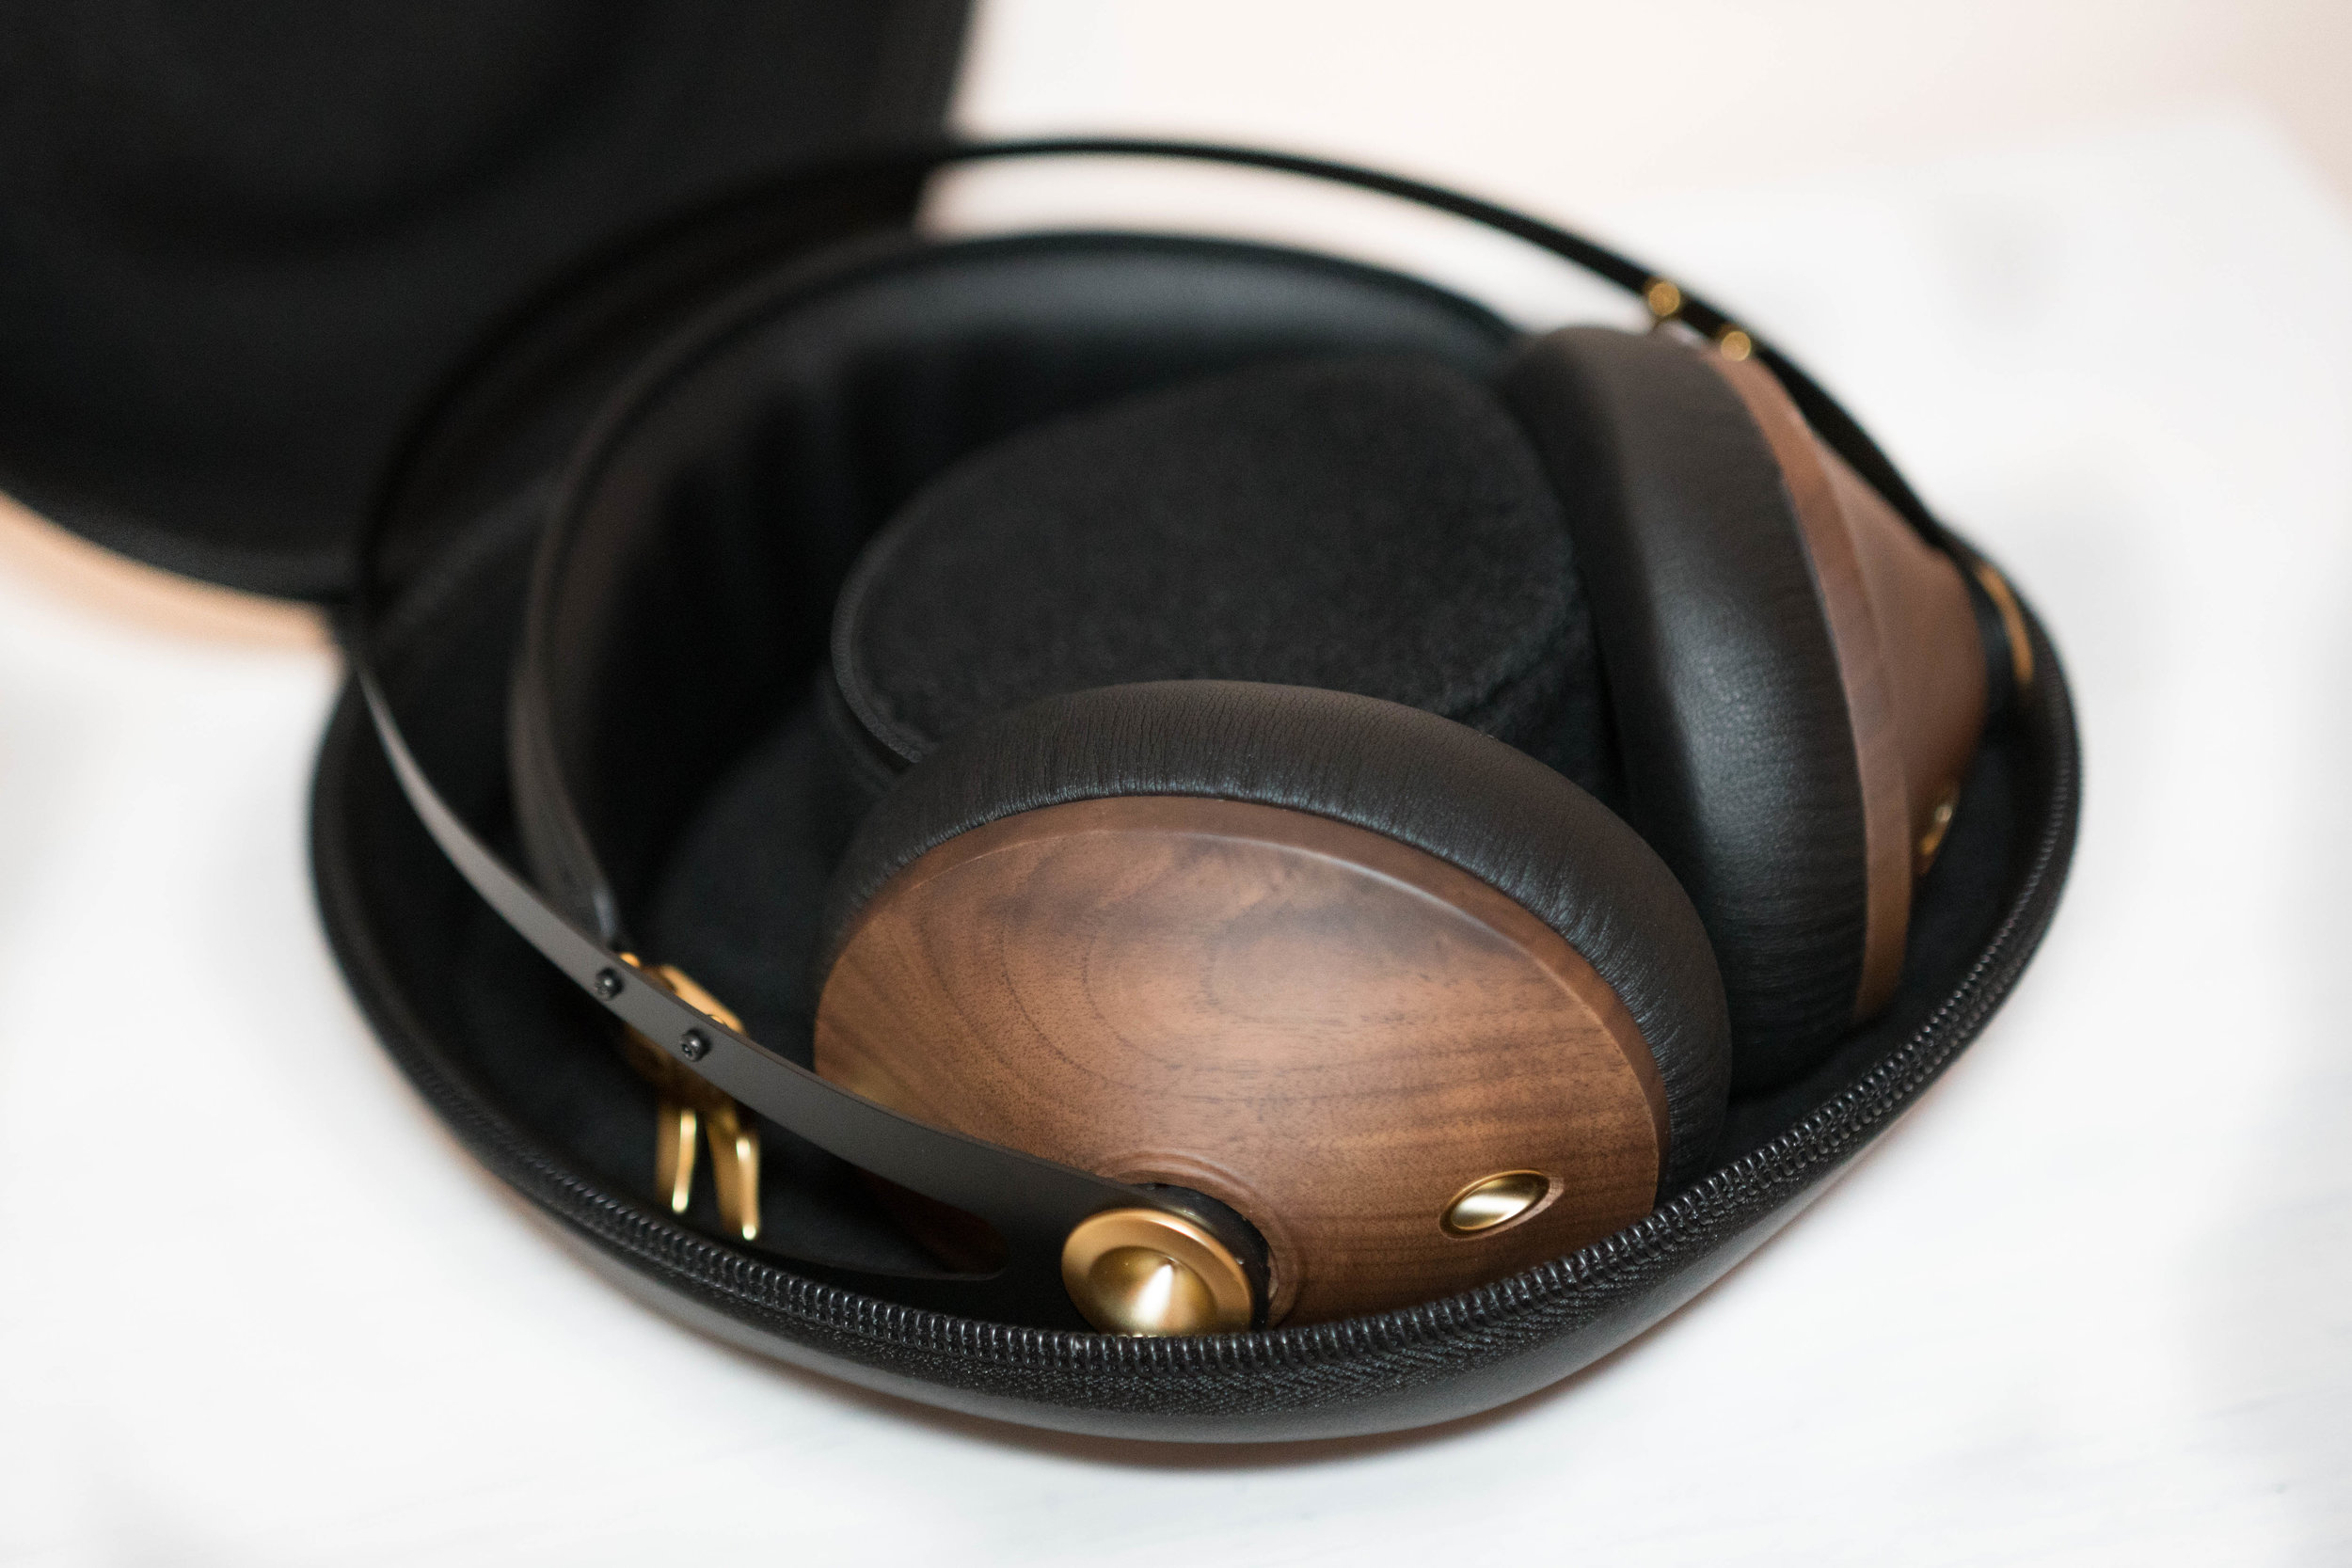 Headphones fit perfectly in the custom case and there is a small soft inner case for cables and accessories.